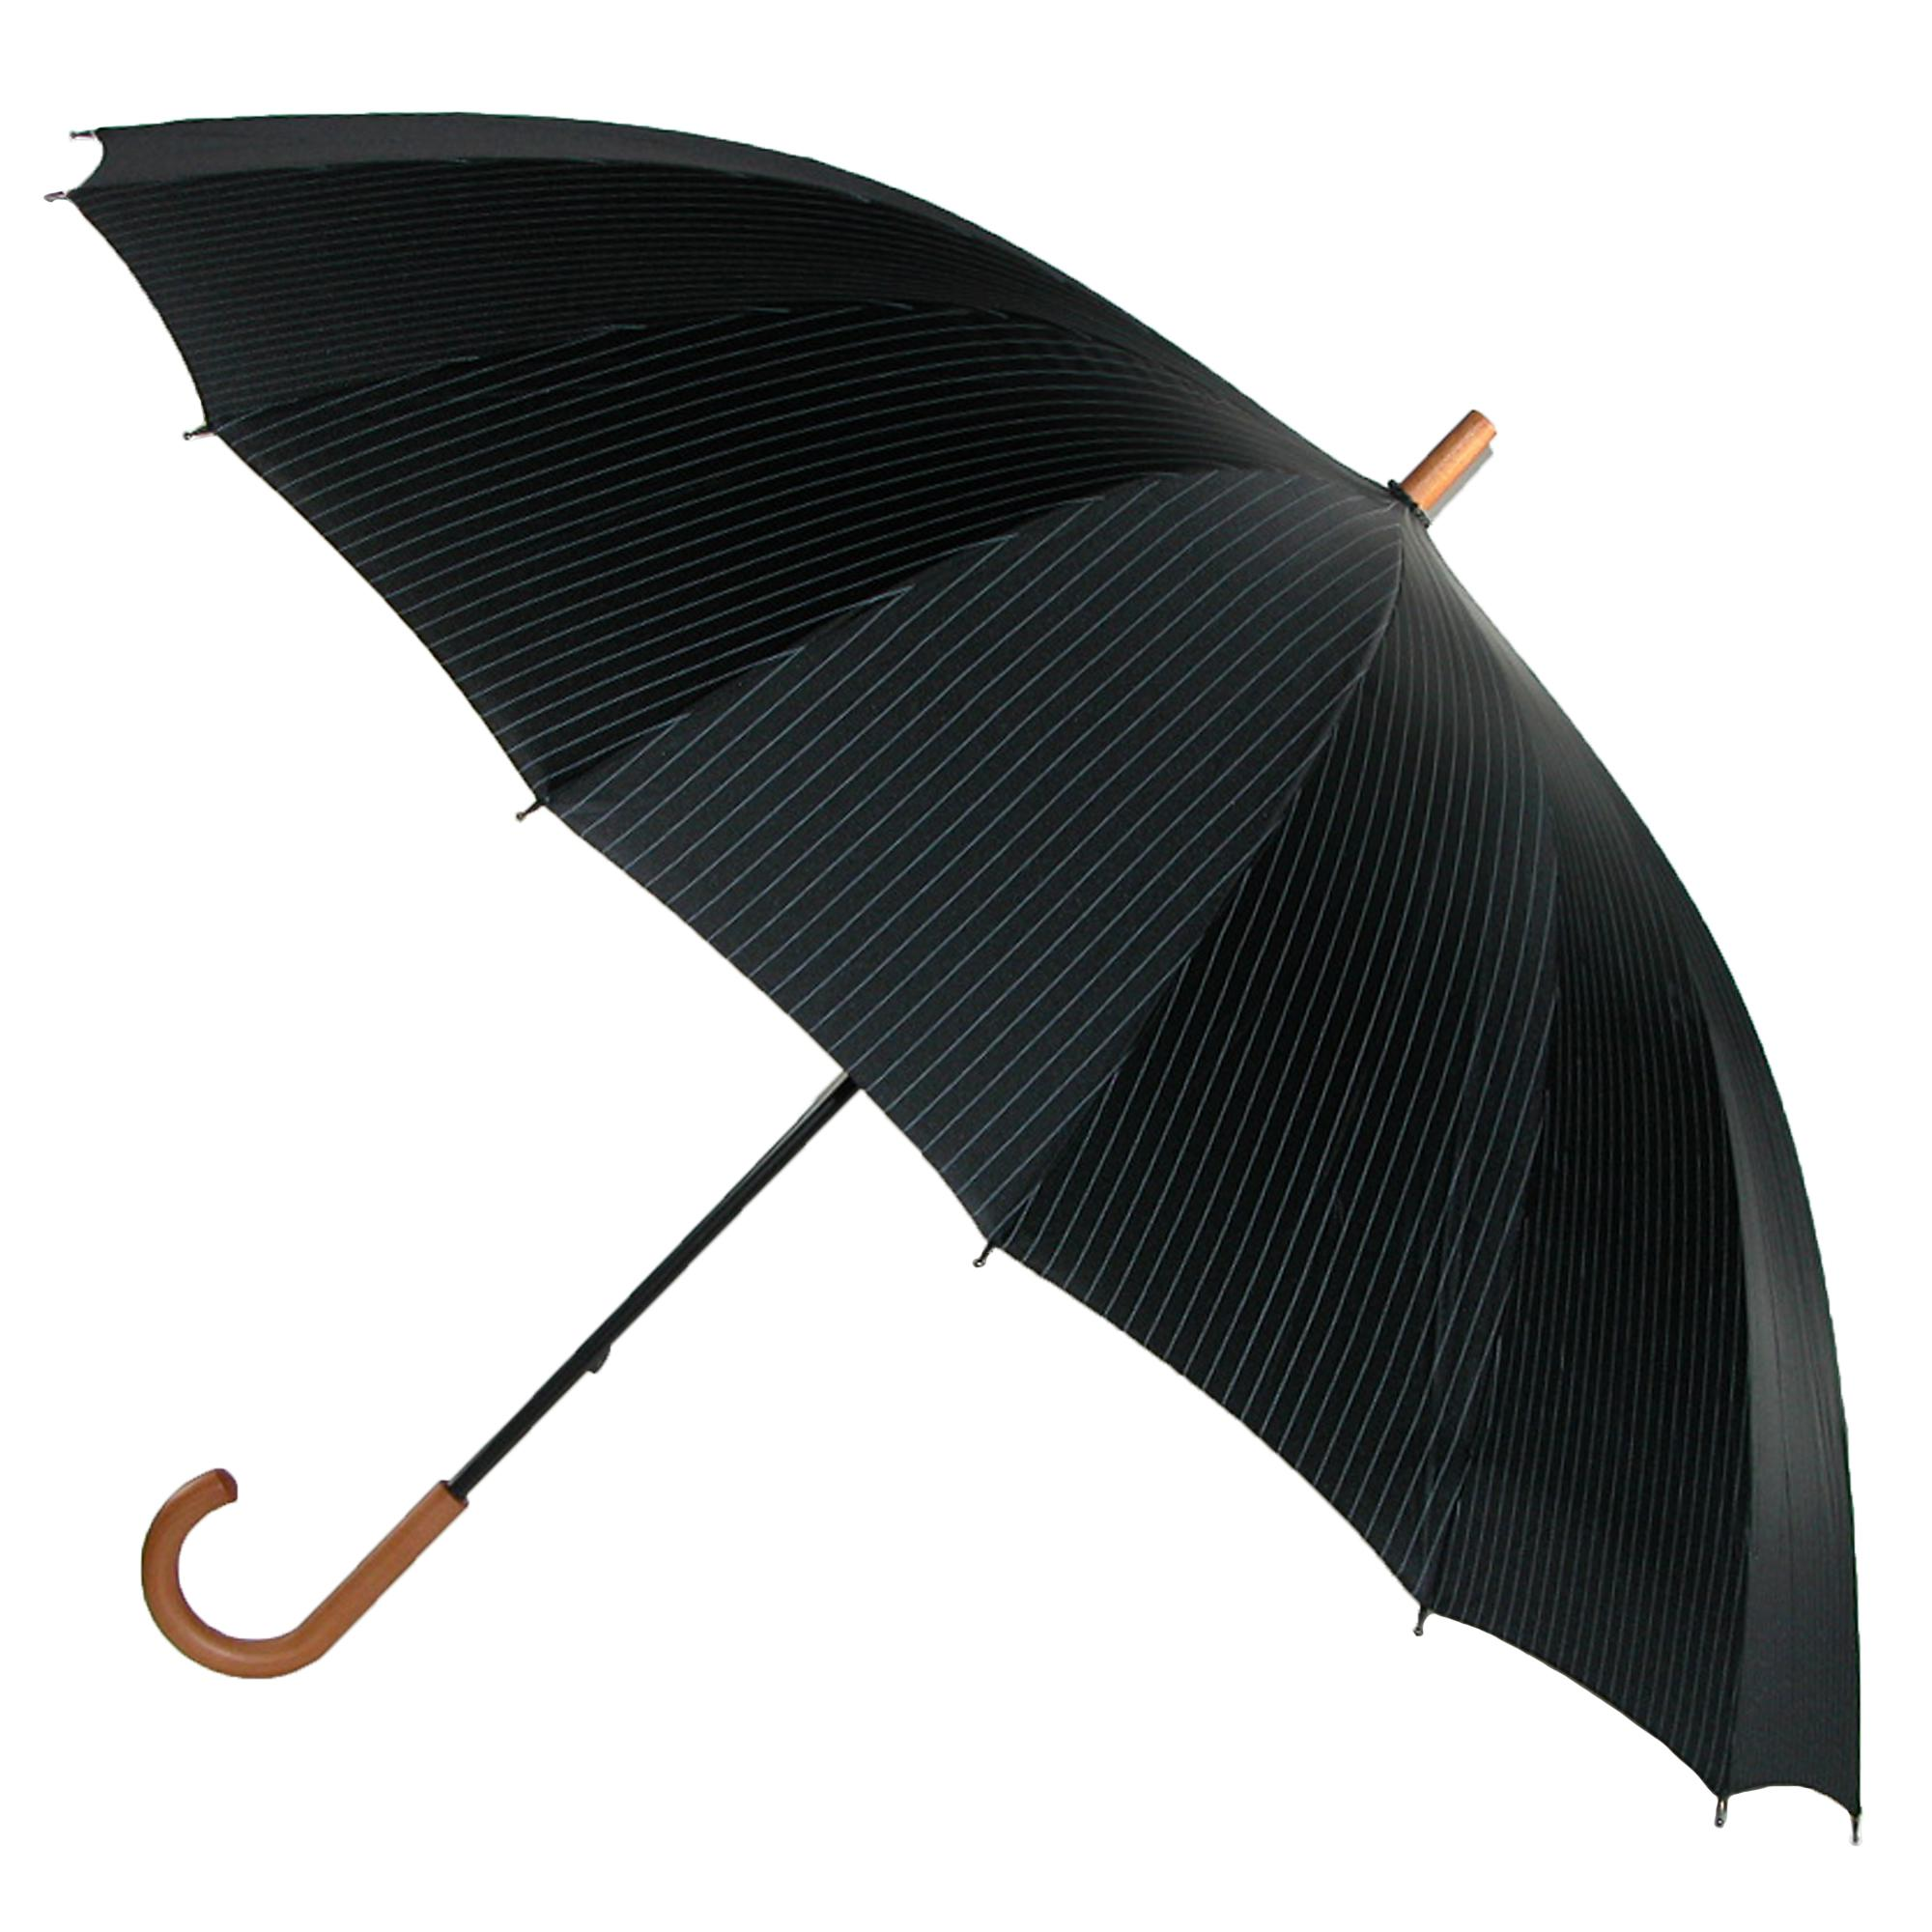 Leighton_60_Inch_Wood_Handle_Pin_Stripe_Print_Doorman_Umbrella_